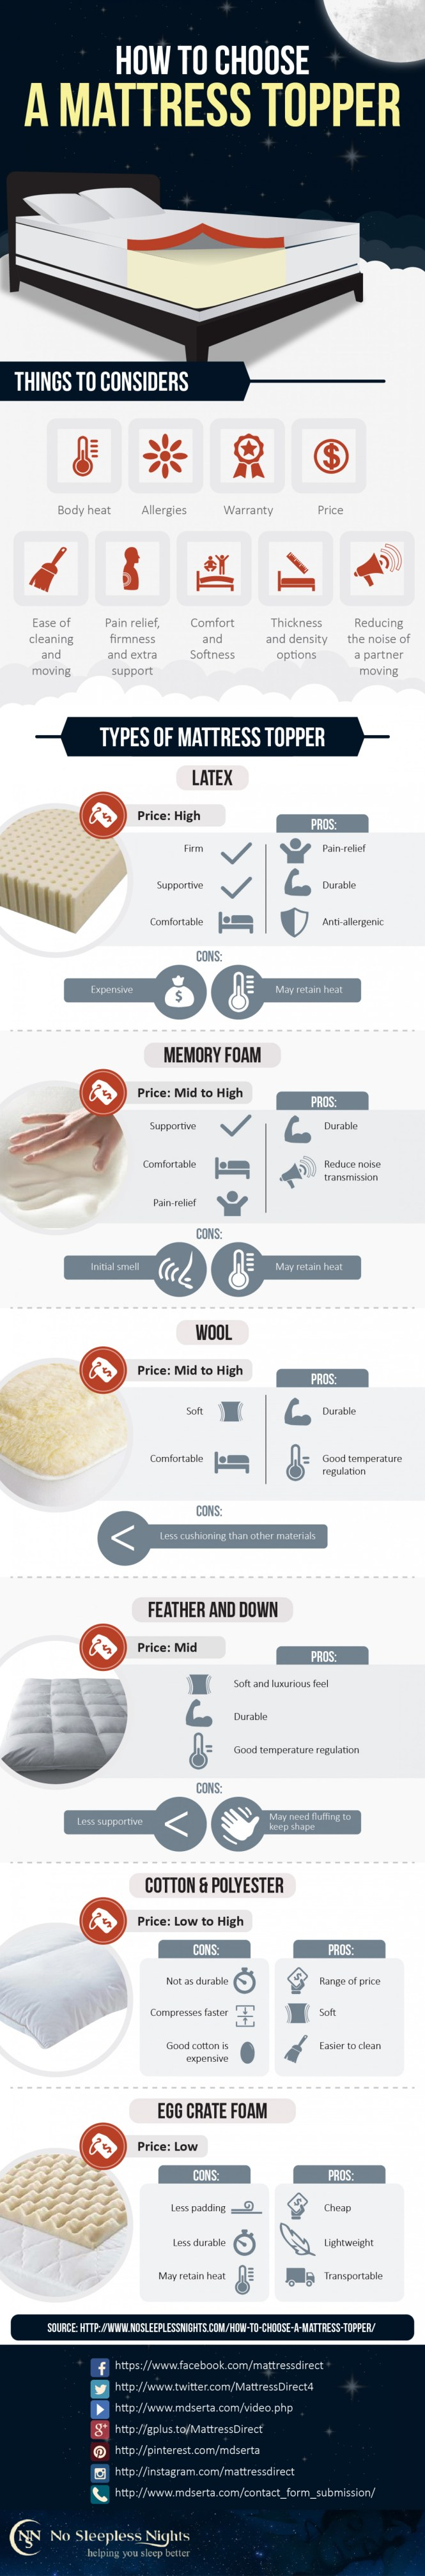 How To Choose A Mattress Topper Direct Infographic